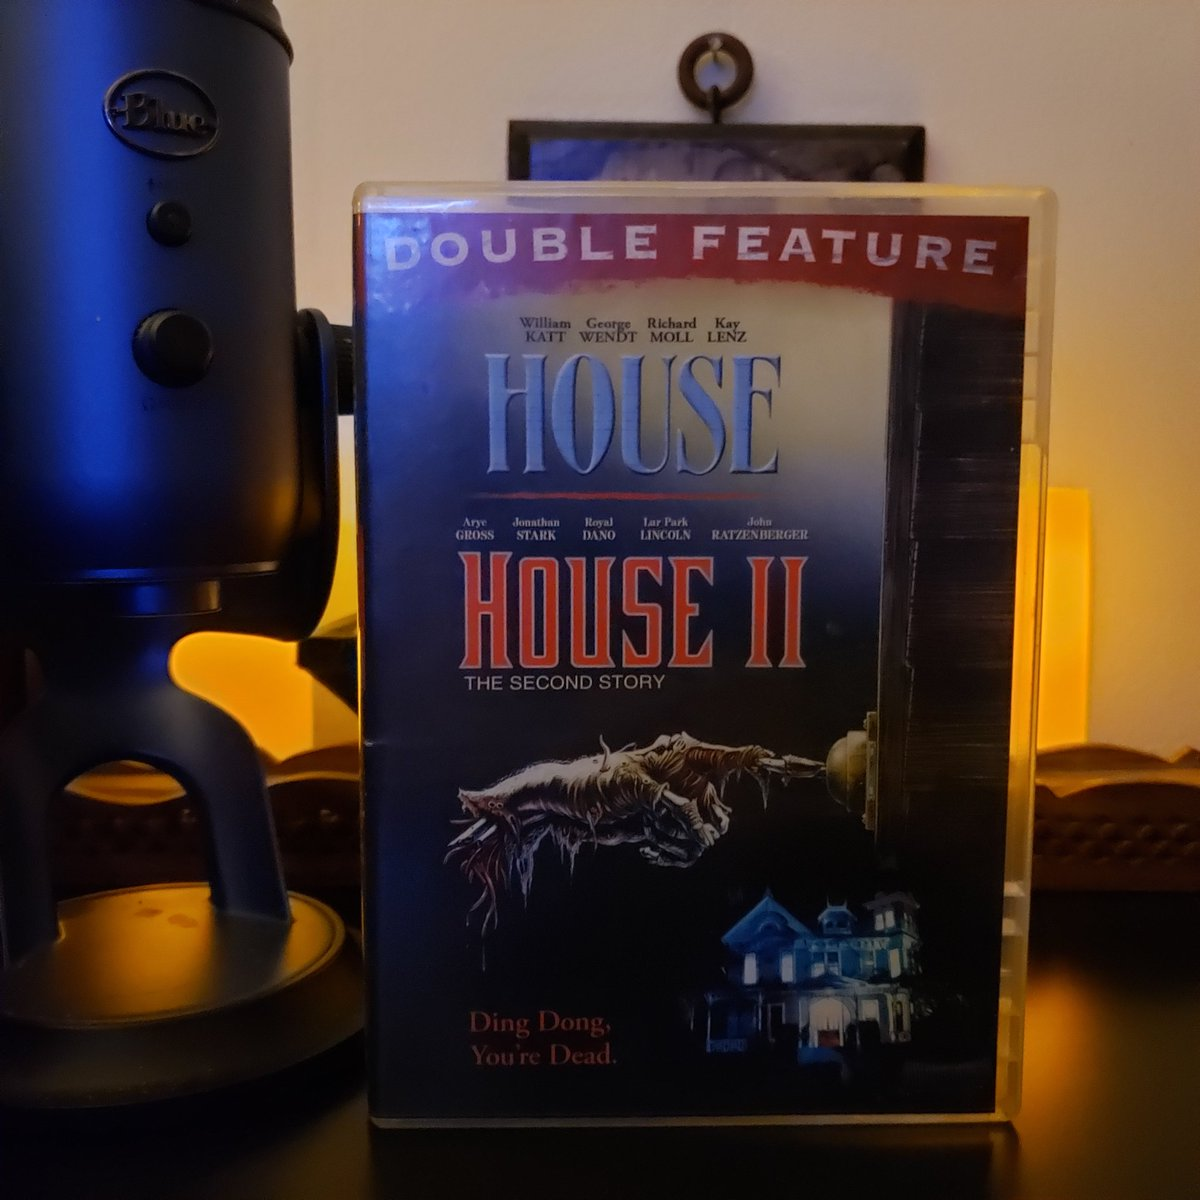 Double-Feature tonight.  #House #HouseII #Horror #HorrorComedy #HorrorFam #MutantFam